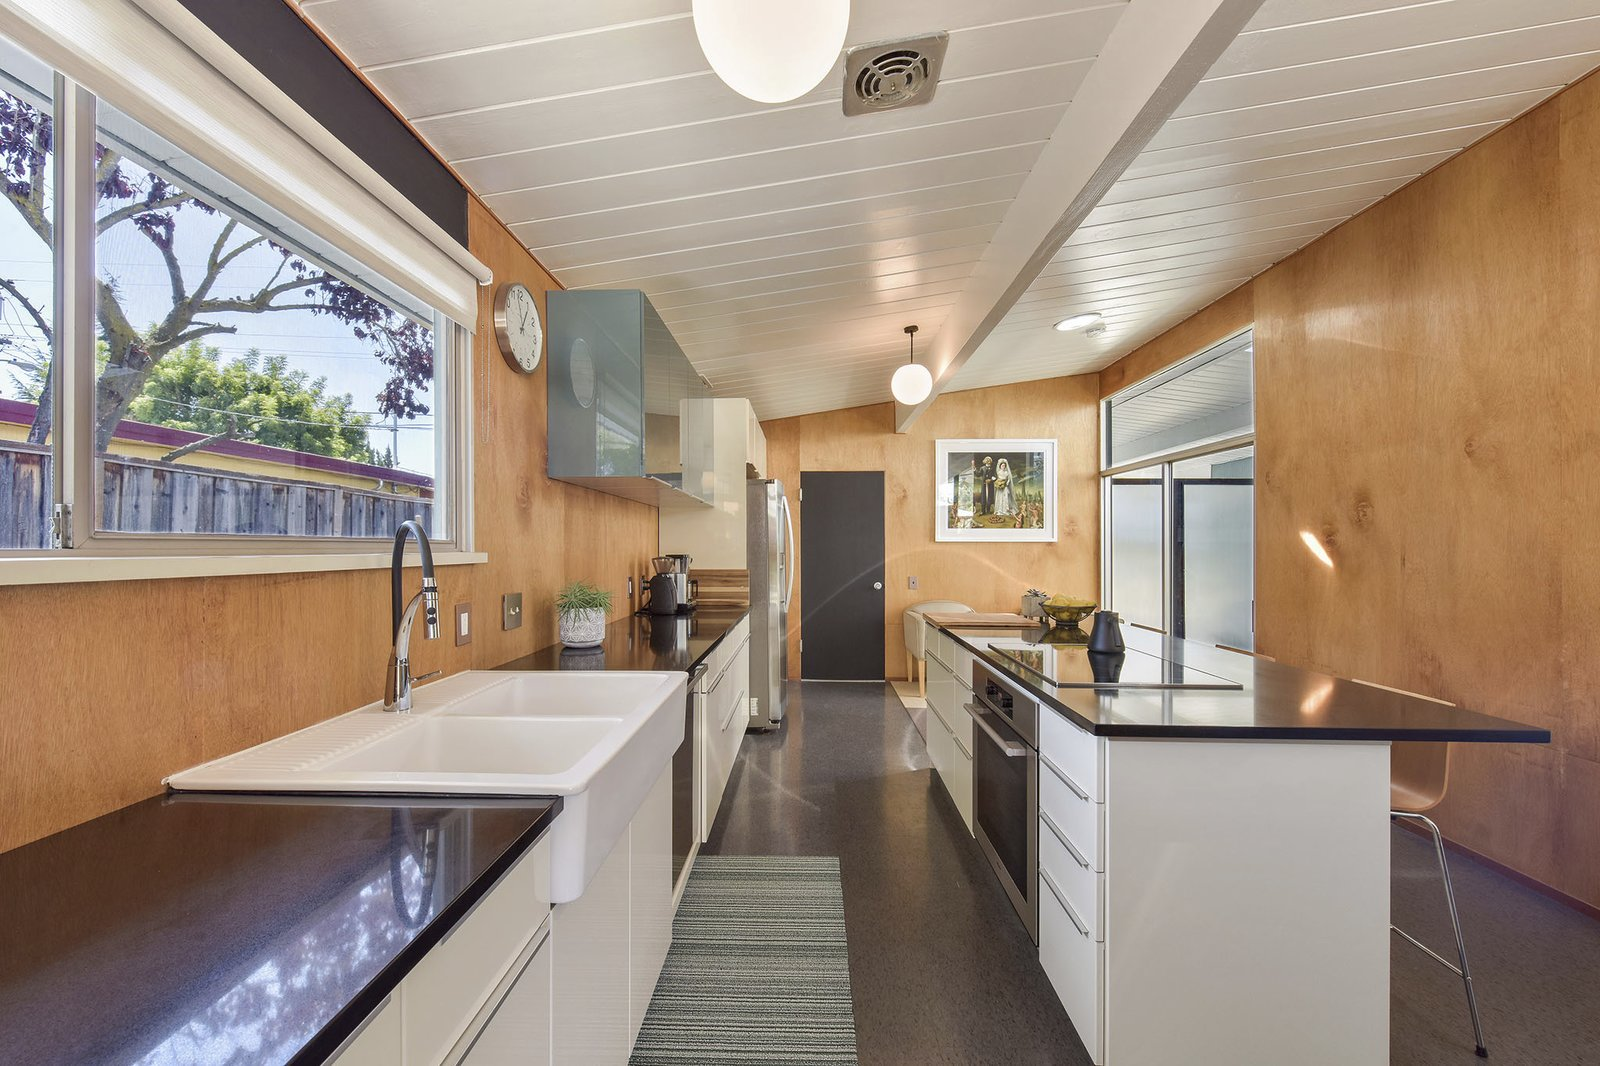 Kitchen, Wood, Cooktops, White, Pendant, Refrigerator, Vessel, and Wall Oven The updated chef's kitchen features lots of workspace and ample storage.     Kitchen Wood Wall Oven Vessel Photos from This Stunning Bay Area Eichler Just Listed For $775K